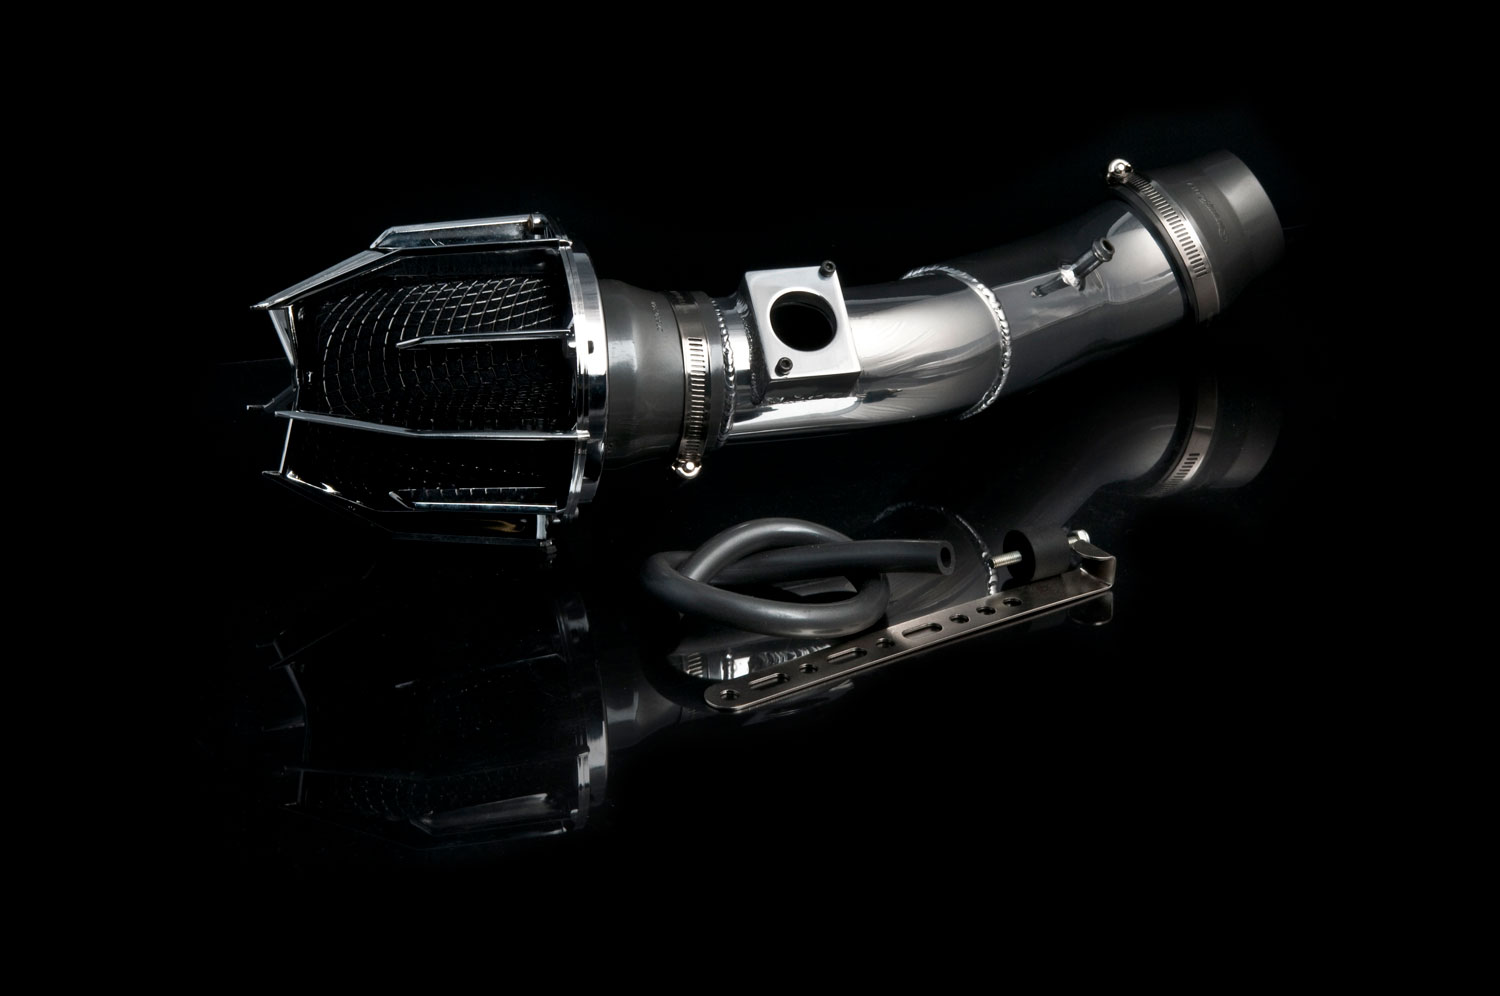 Weapon-R Dragon Air Intake System Cold Ram Kit II For 03 Outlander 4CYL